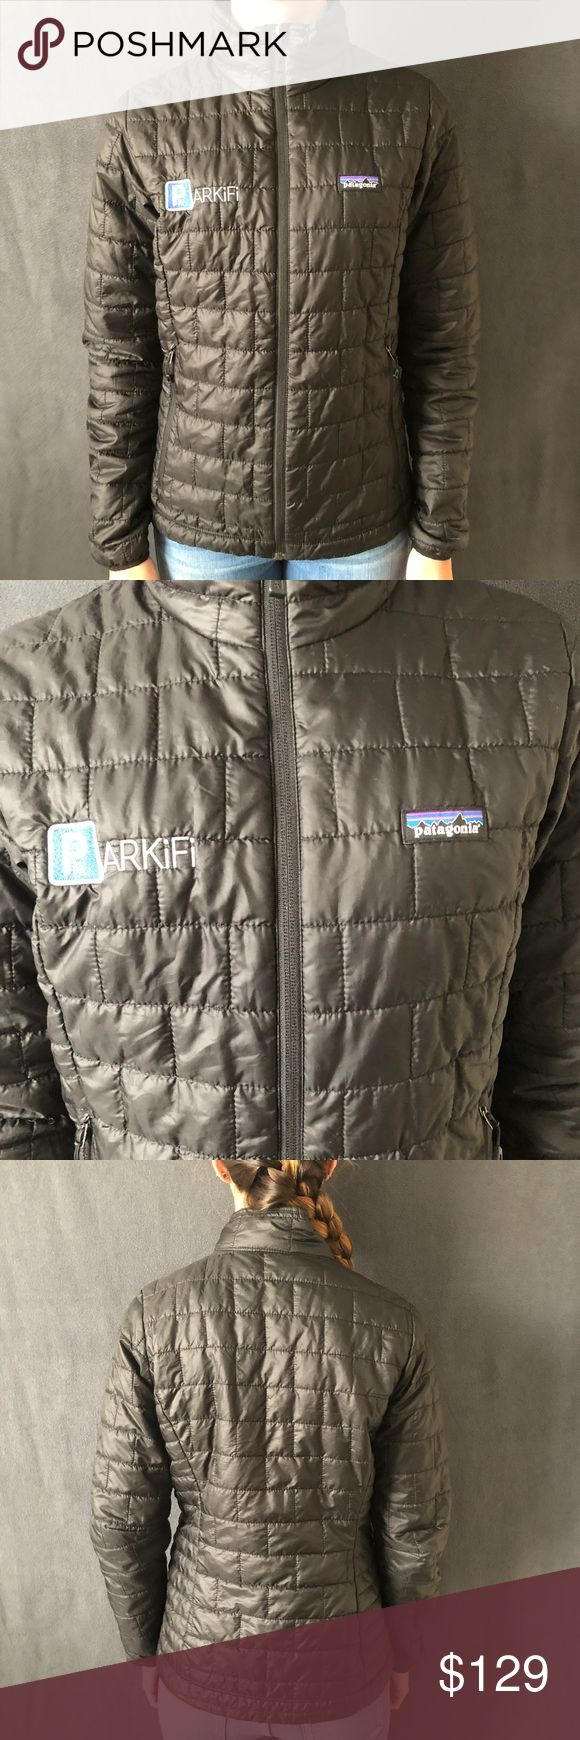 Patagonia Nano Puff Excellent condition! Very warm and lightweight. Prima loft insulation. Has a company logo on right side, so price reflects this.  ⭐️Smoke-free and pet-free home. No trades. Will answer any questions. 1-2 day shipping. BUNDLE to get more out of your shipping and to SAVE with discounts!⭐️ Patagonia Jackets & Coats